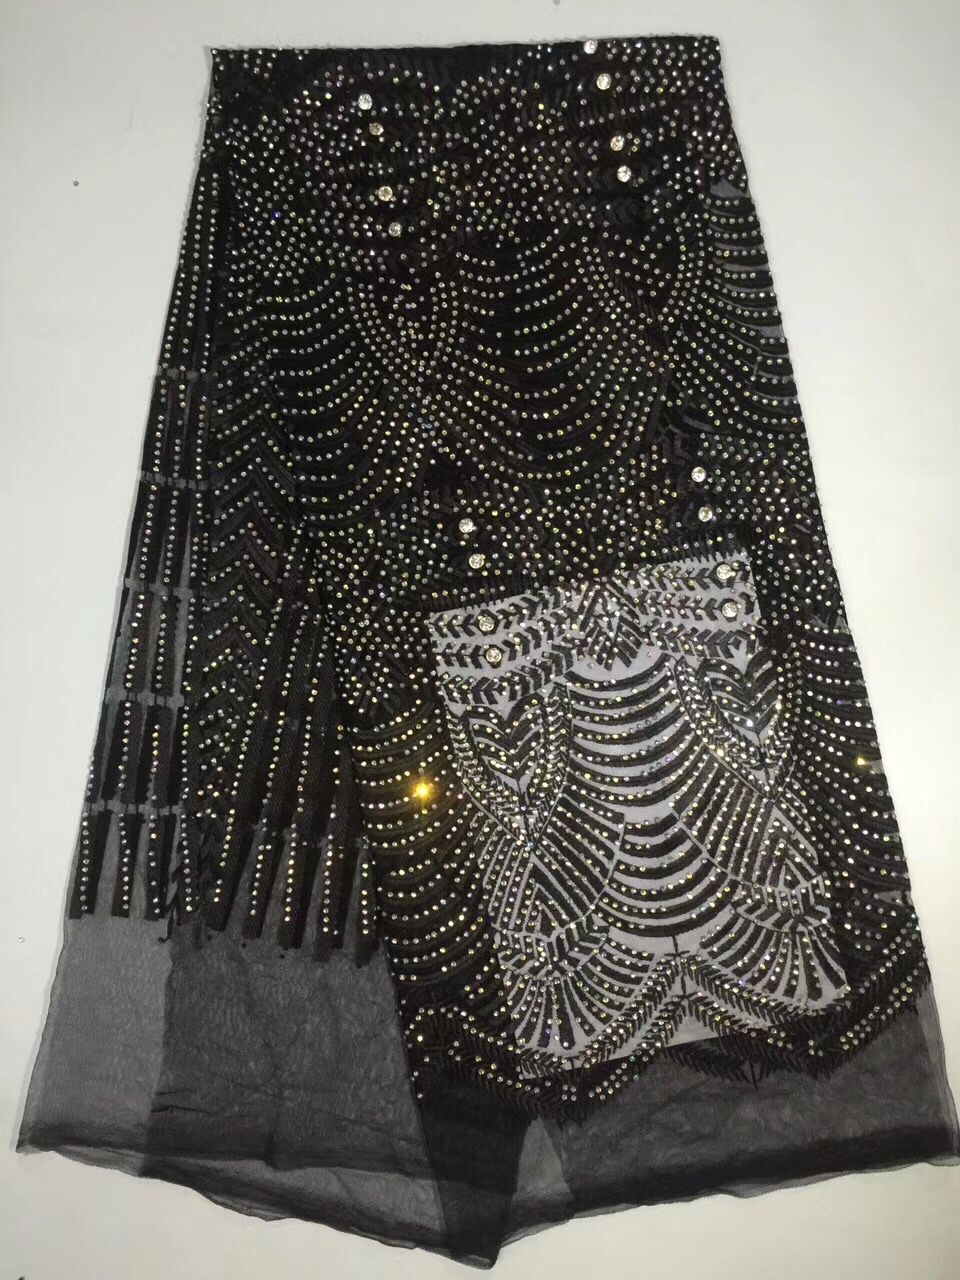 glitter lace fabric black african french lace with rhinestone high quality  cheap fabrics for evening gown dress 5 yard lotDPF -in Lace from Home   Garden  on ... 8b587ca0c32c